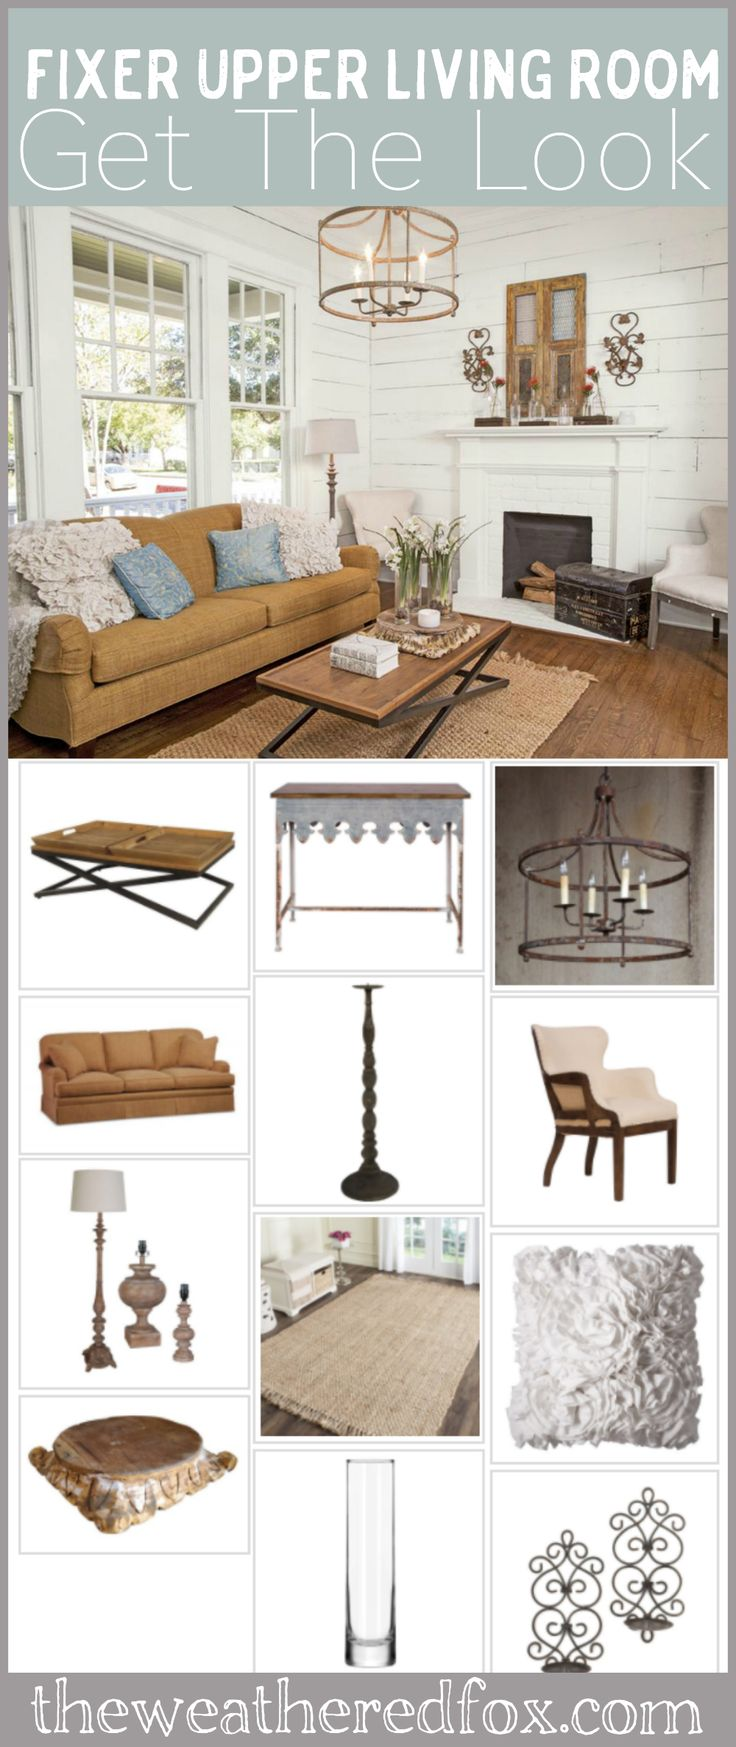 204 best the weathered fox images on pinterest for Fixer upper living room designs